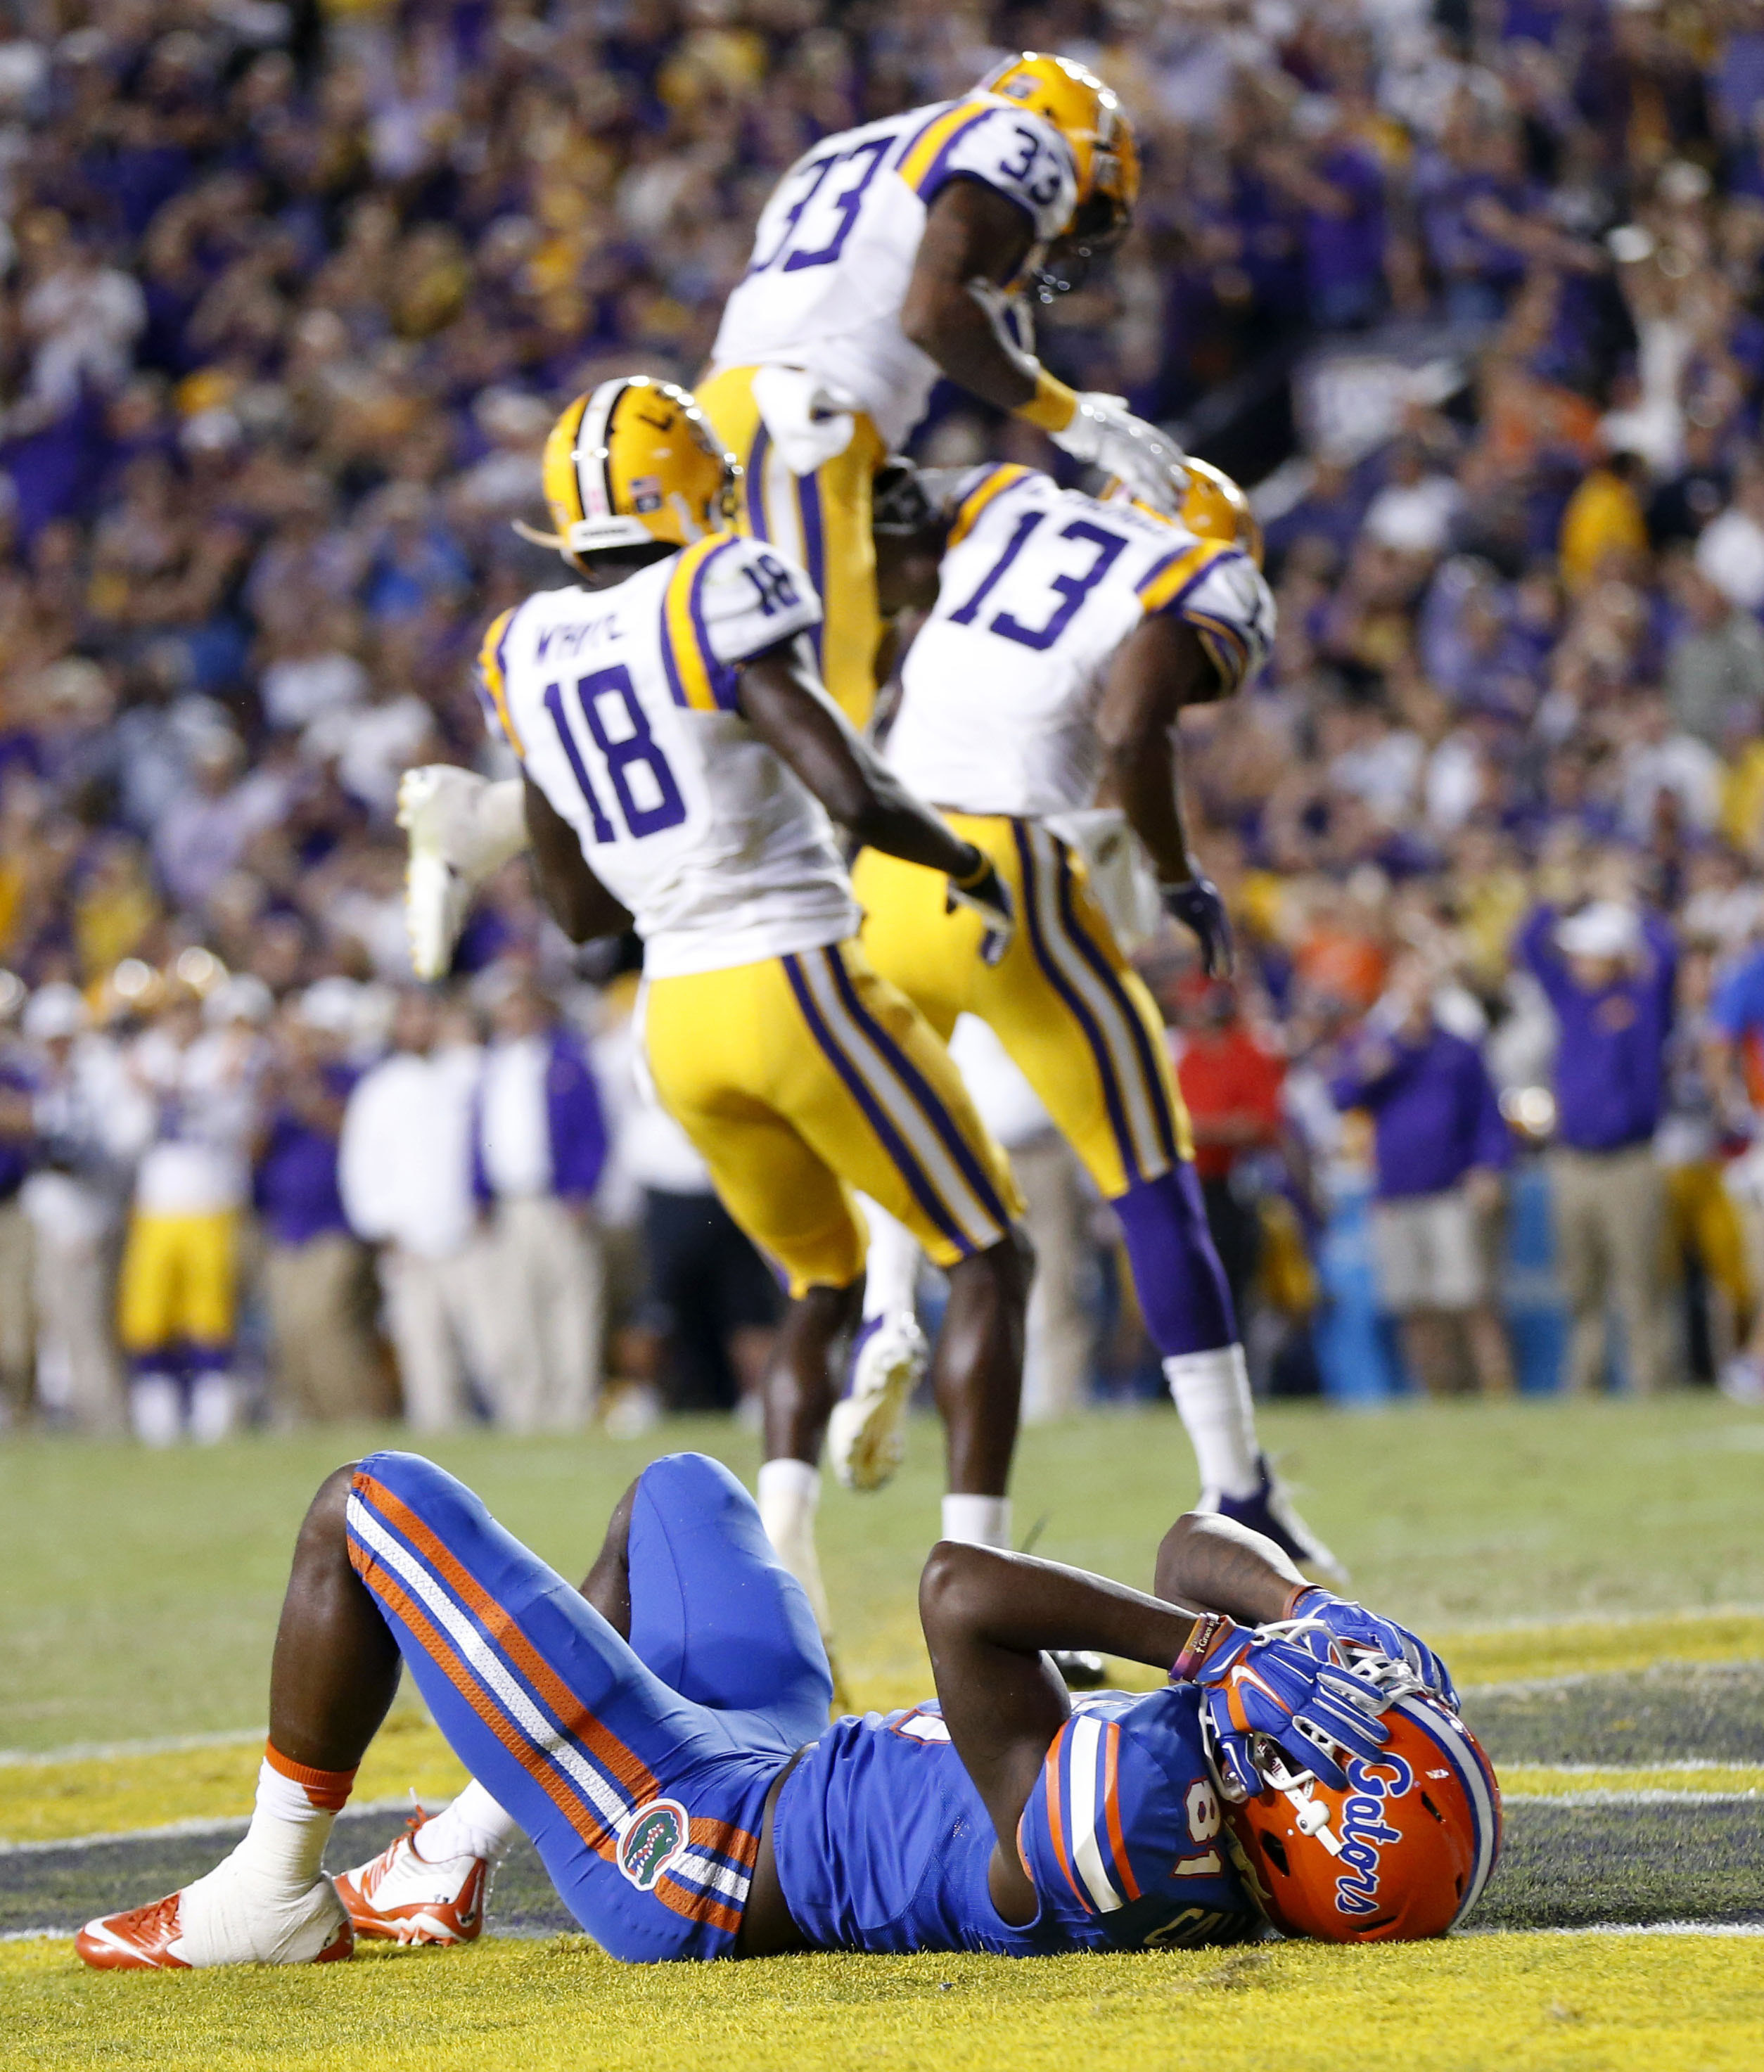 FILE - In this Oct. 17, 2015, file photo, Florida wide receiver Antonio Callaway (81) reacts as LSU celebrates after he dropped a pass in the end zone in the second half of an NCAA college football game in Baton Rouge, La. Florida's visit to LSU this week